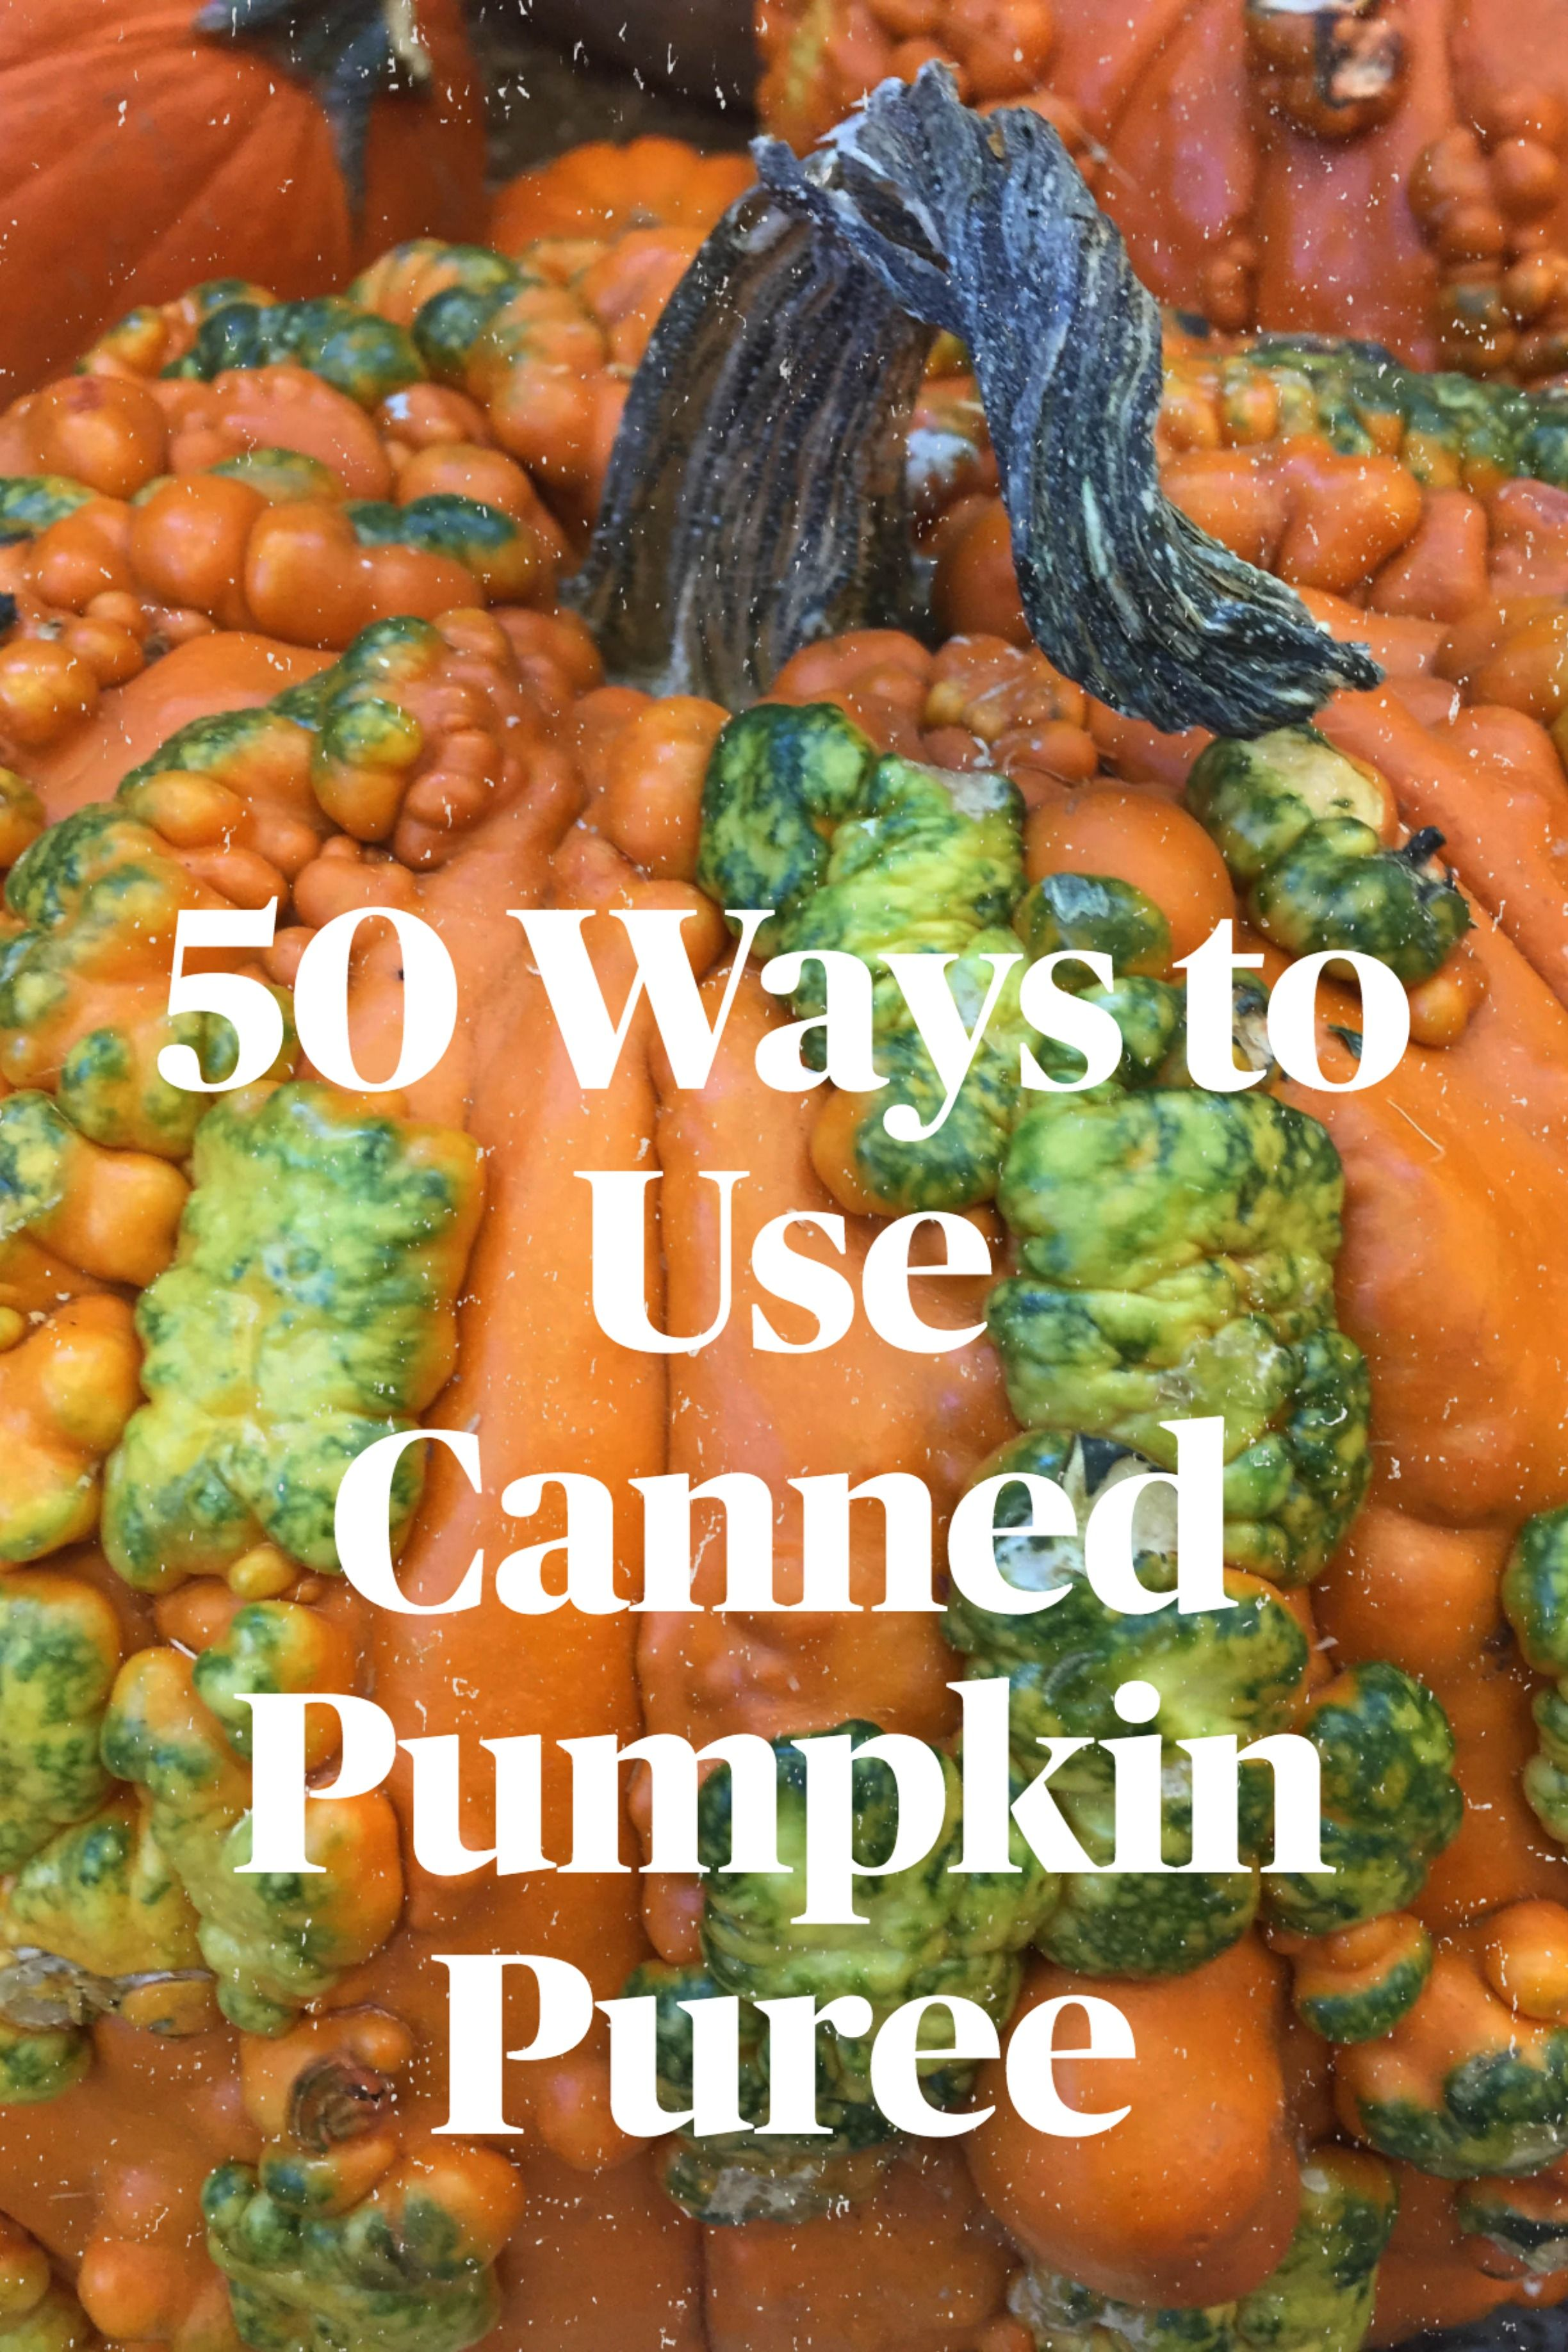 50 Ways To Use Canned Pumpkin Puree Canned Recipes Healthy Desserts Savory Dinner And More In 2020 Pumpkin Puree Pumpkin Puree Recipes Pumpkin Puree Recipes Healthy